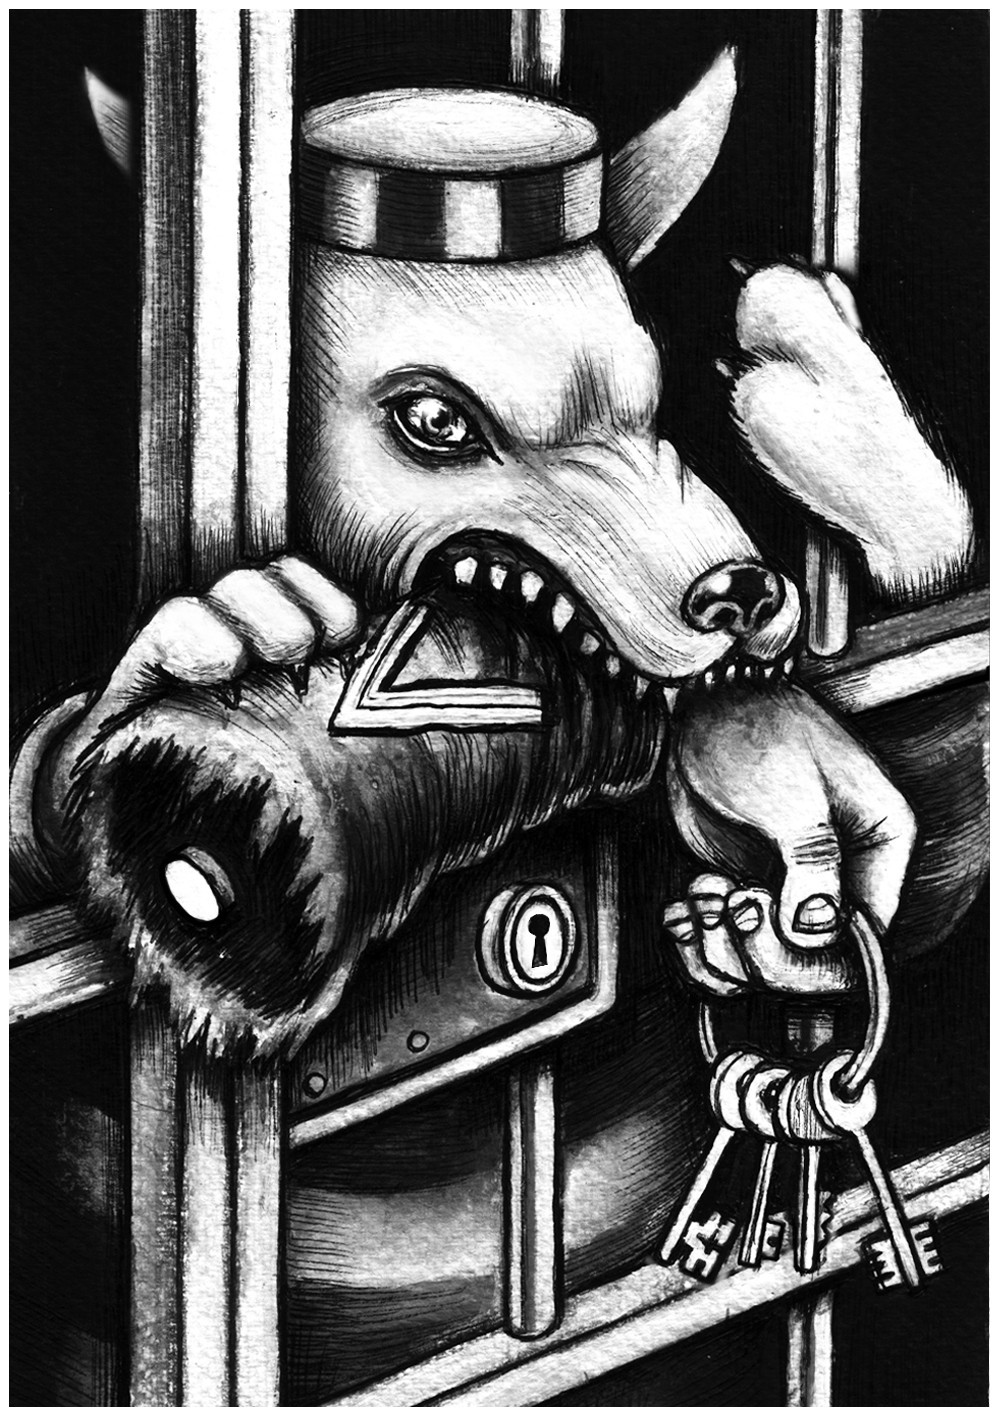 wolf in prison - graficanera - NO COPYRIGHT